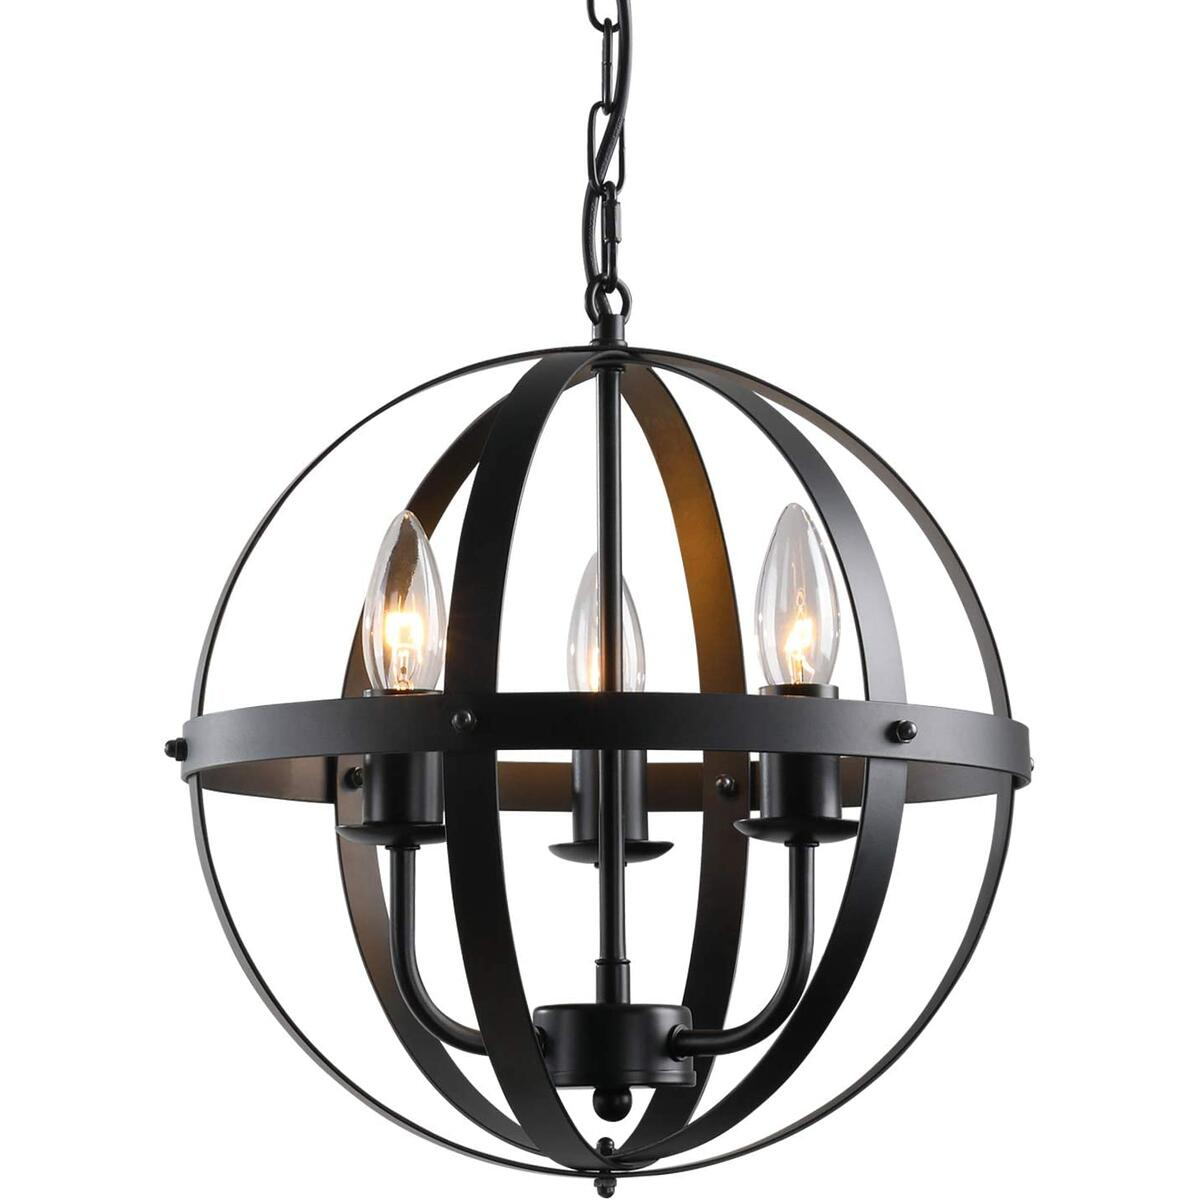 3-Light Farmhouse Chandelier for Dining Room, 13